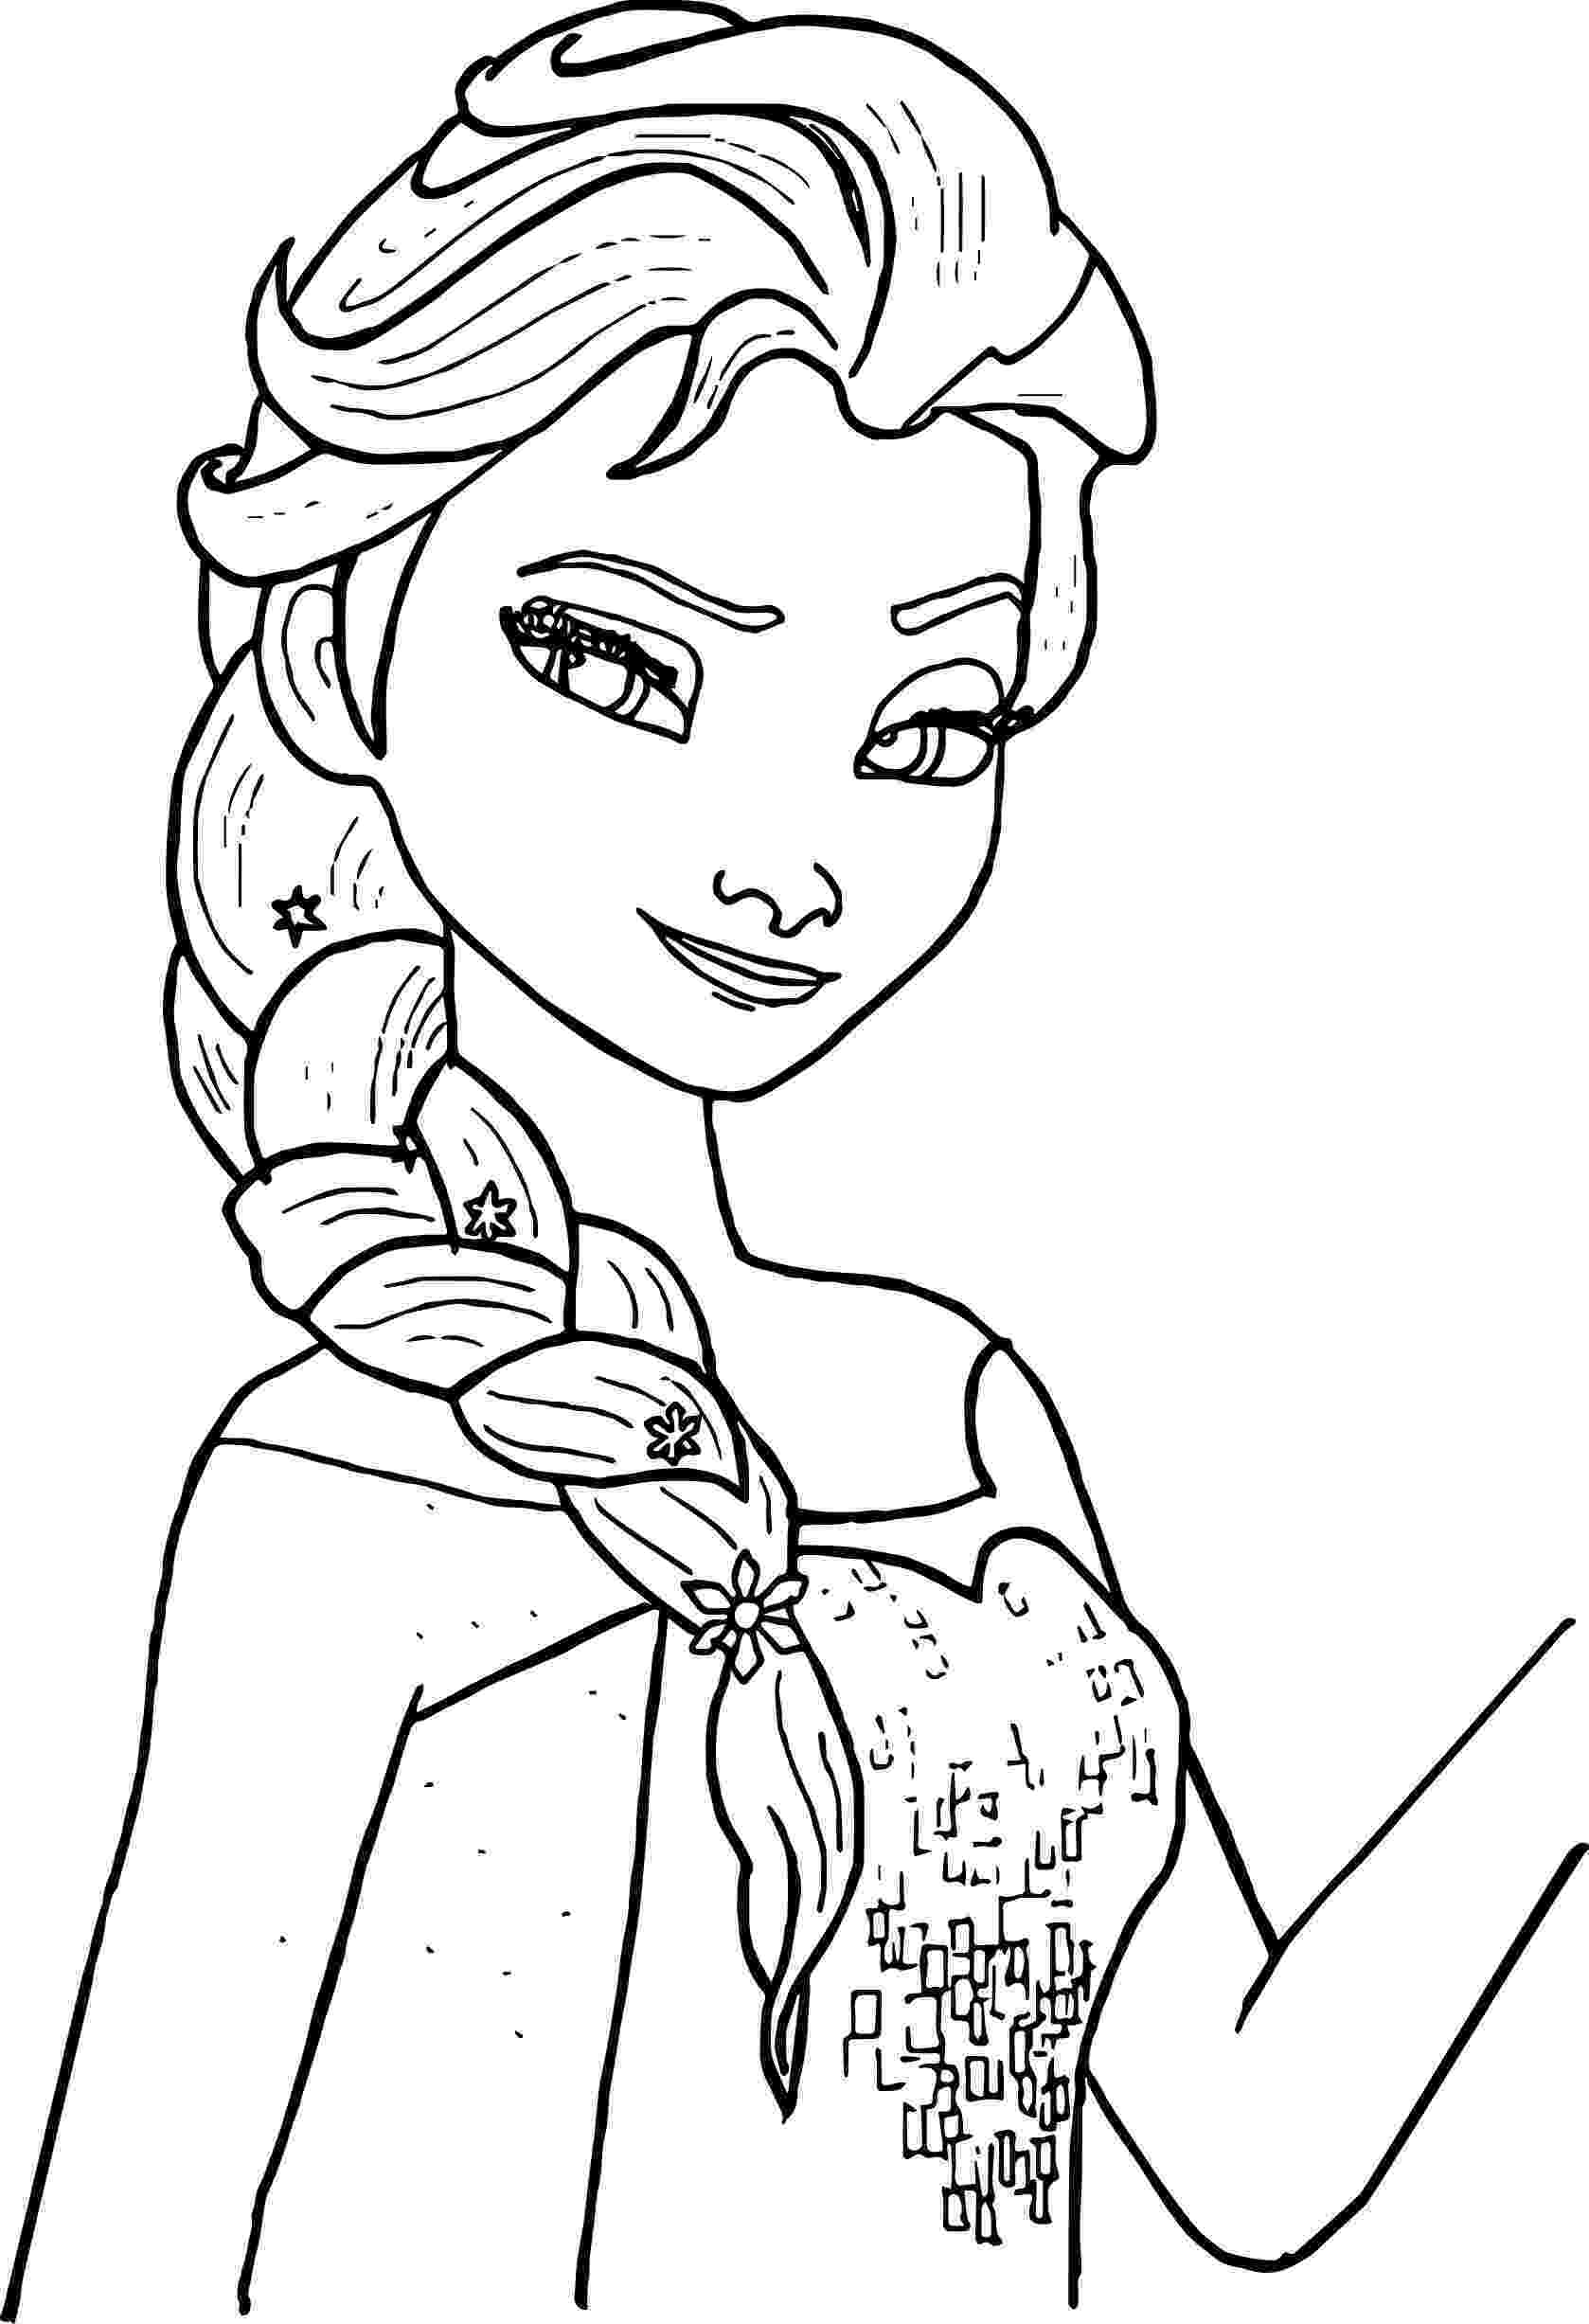 printable coloring pages for kids free printable puppies coloring pages for kids pages printable for coloring kids